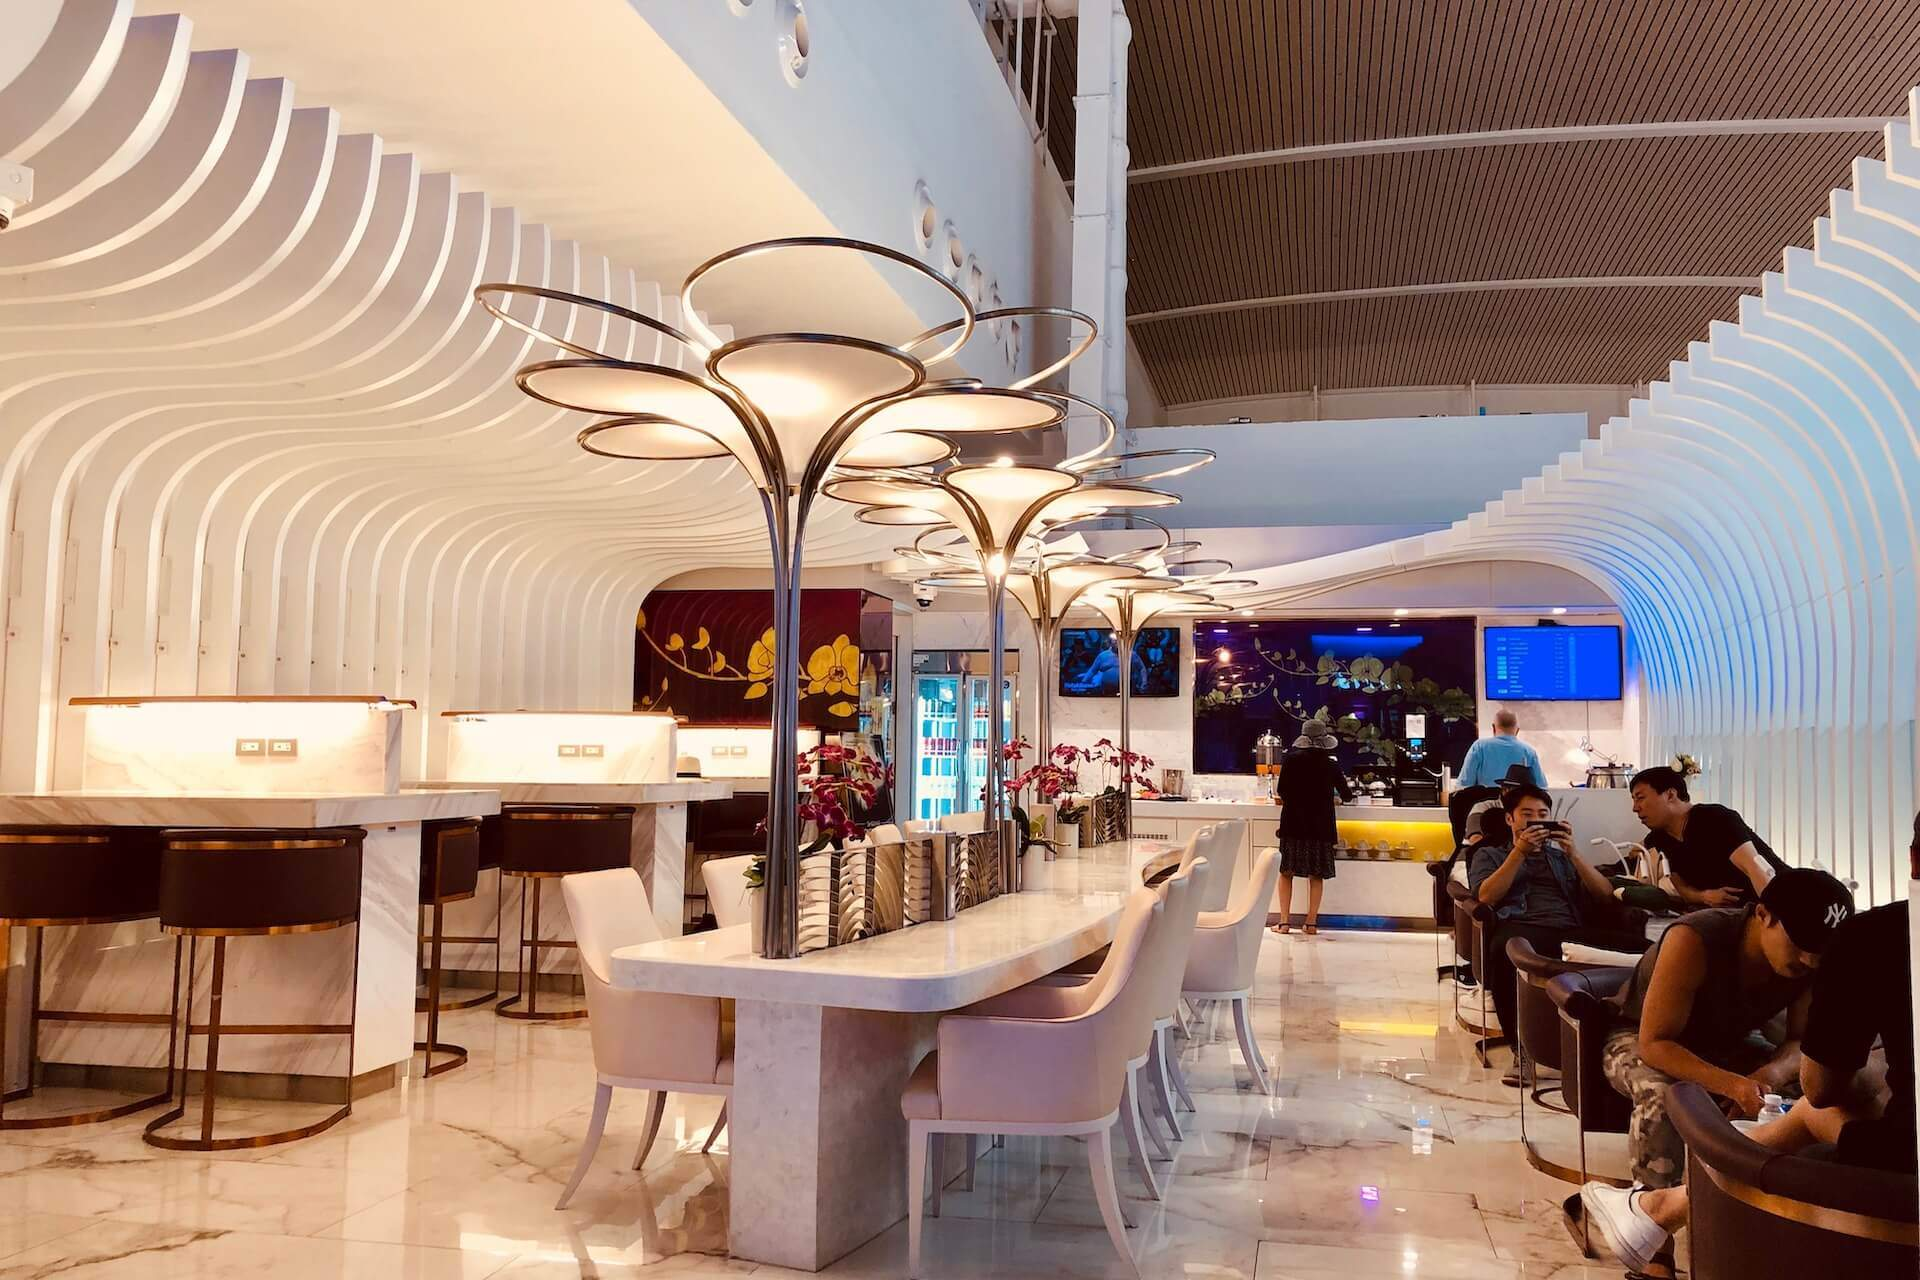 Thai Airways Royal Orchid Business Class Lounge Phuket